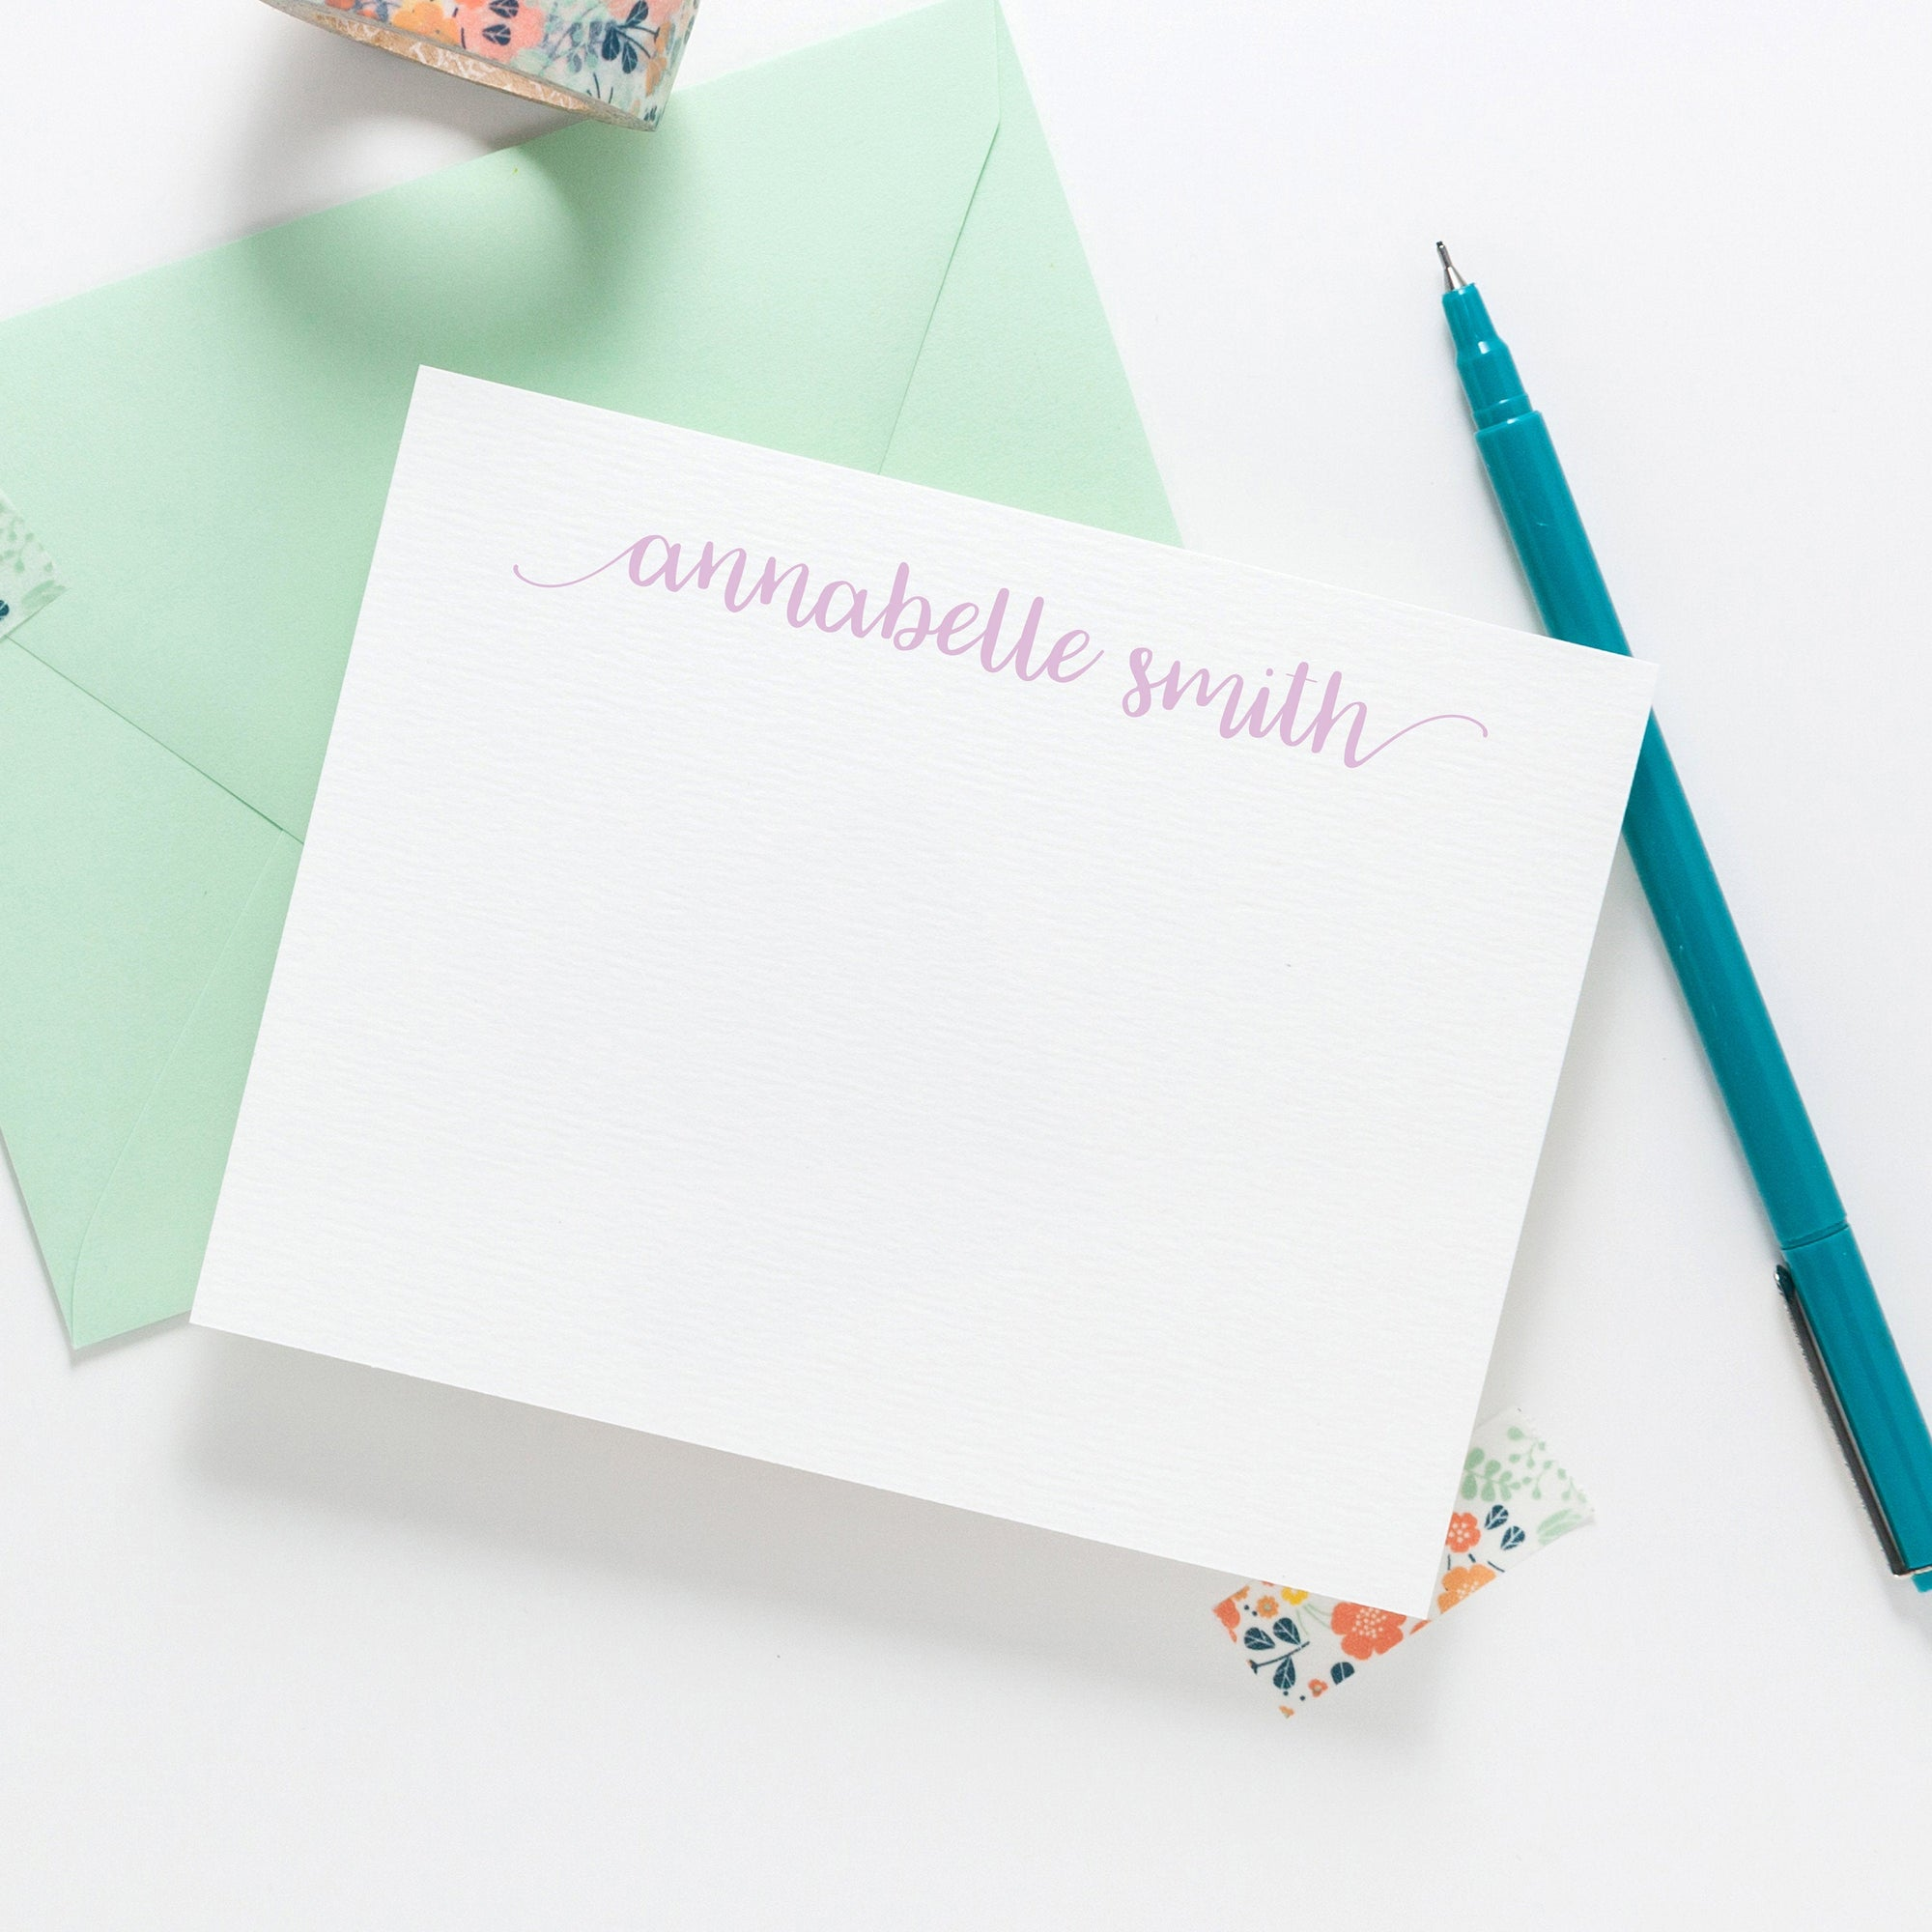 Whimsical calligraphy script stationery 027NC - Joy Creative Shop